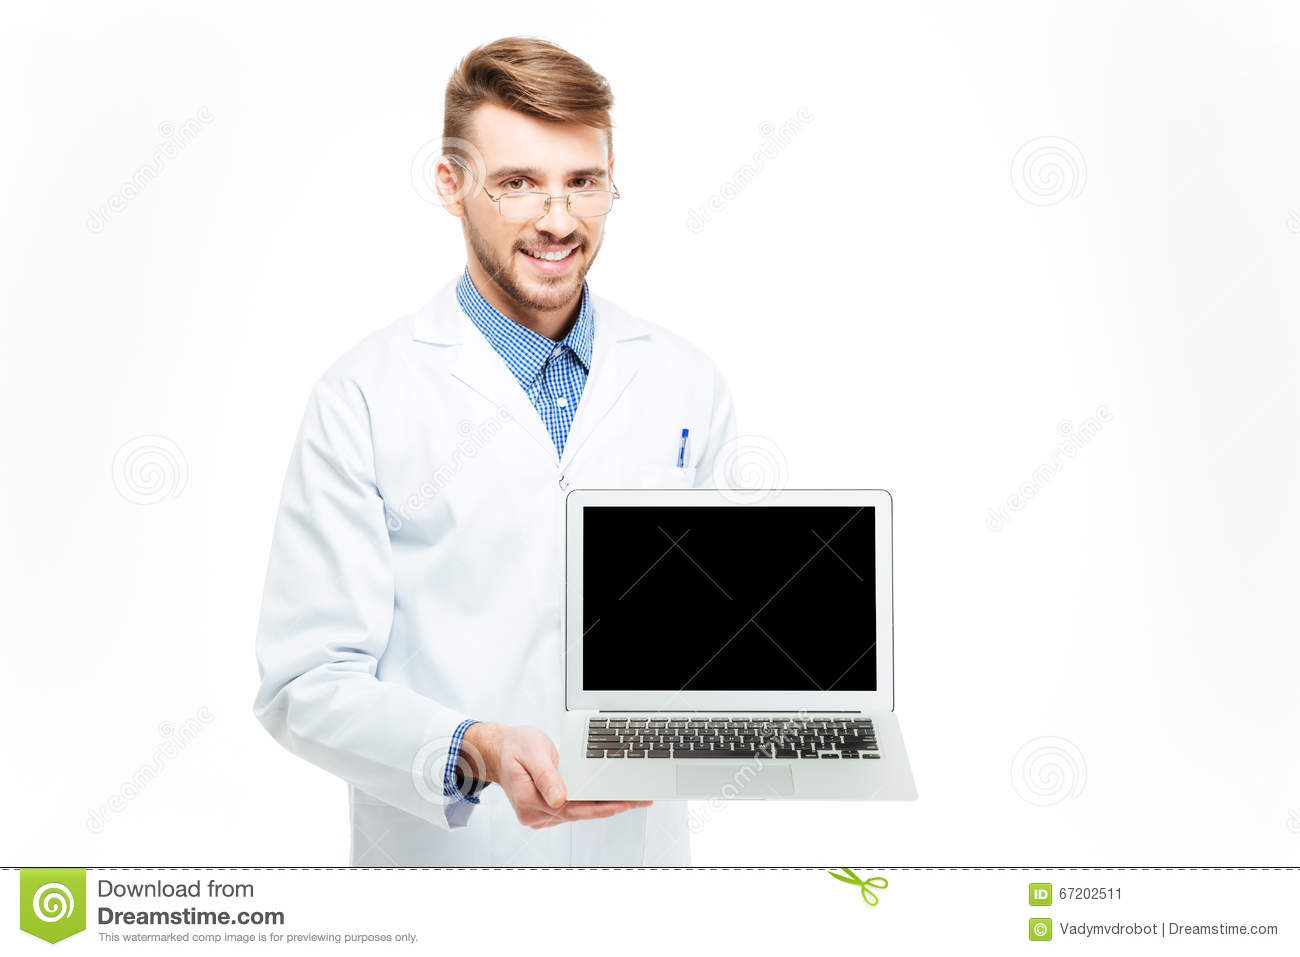 Male doctor showing blank laptop computer screen